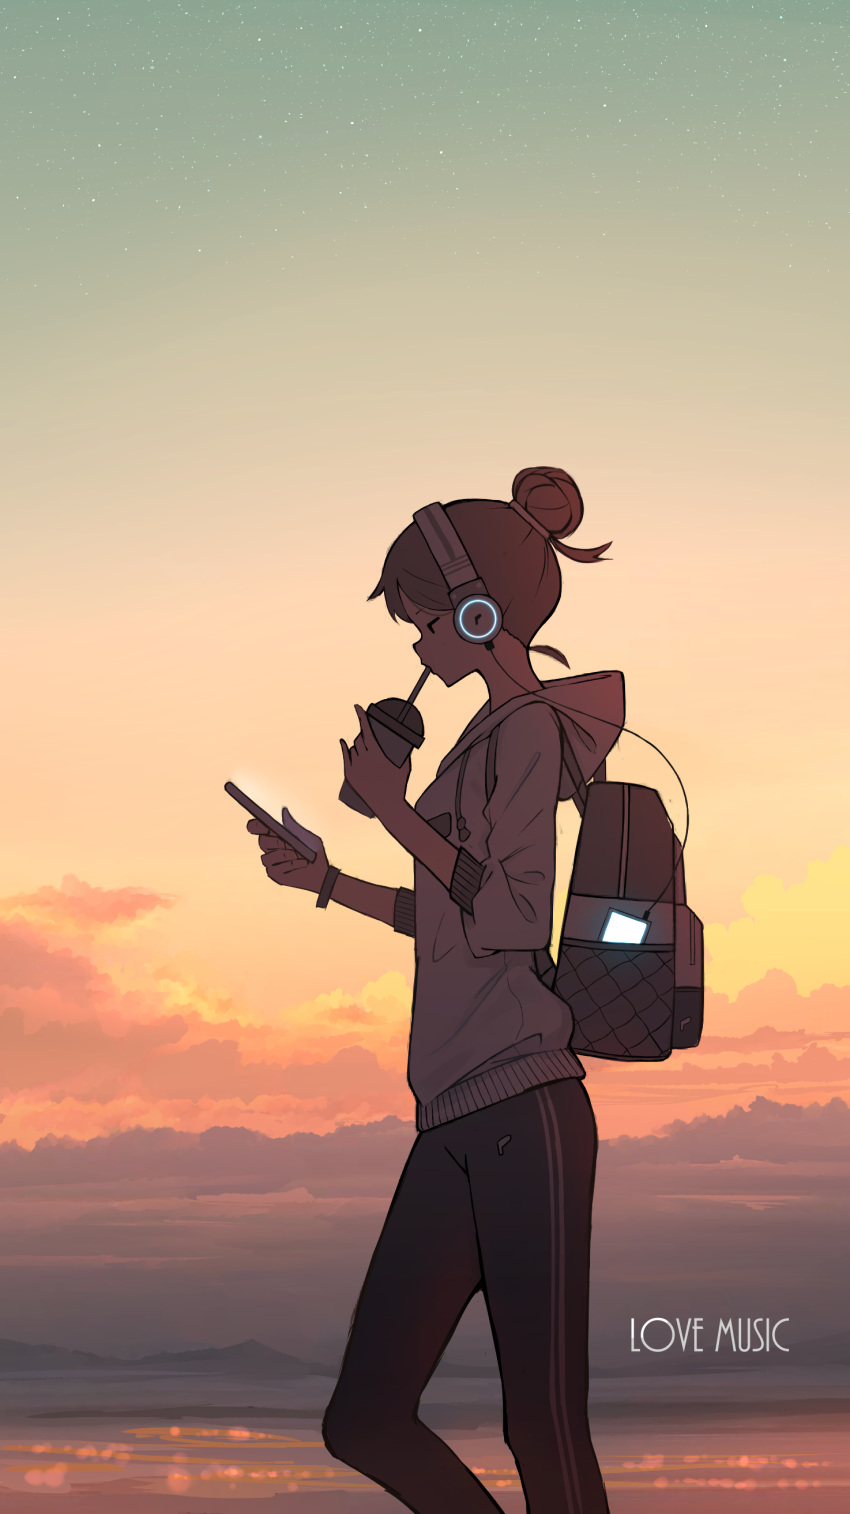 1girl absurdres backlighting backpack bag black_eyes black_pants brown_hair cable cellphone clouds cloudy_sky cup disposable_cup drinking english_text evening feet_out_of_frame from_side glowing hair_bun headphones highres holding holding_cellphone holding_cup holding_phone hood hood_down jitome long_sleeves mountainous_horizon original outdoors pants pasoputi phone profile short_hair sky smartphone solo standing sunset track_pants white_hoodie wristband